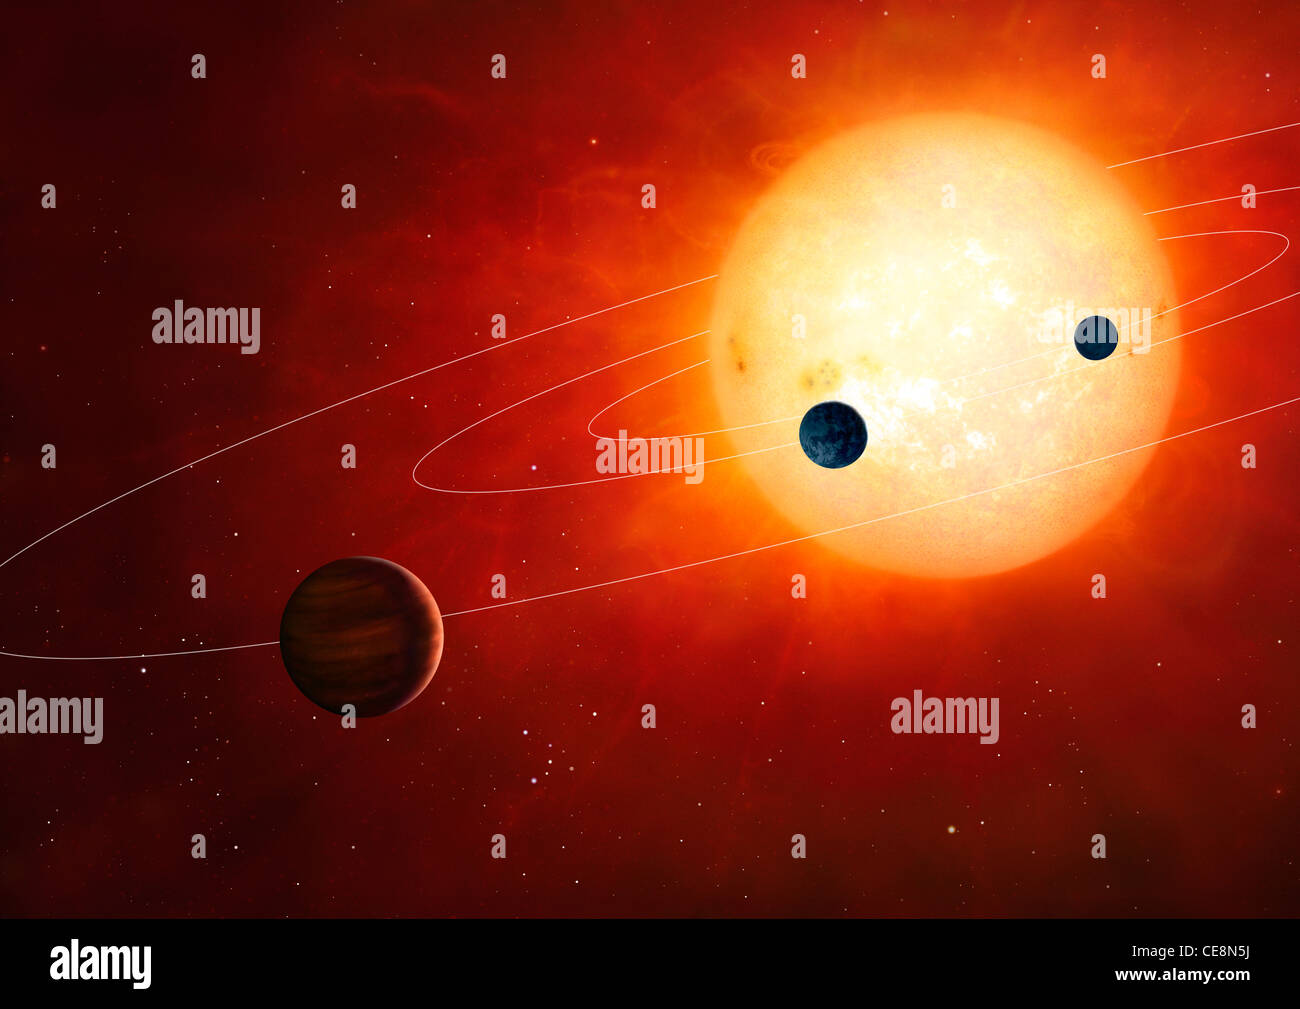 Artwork hypothetical planetary system around sun-like star The planetary system includes rocky gaseous planets in - Stock Image